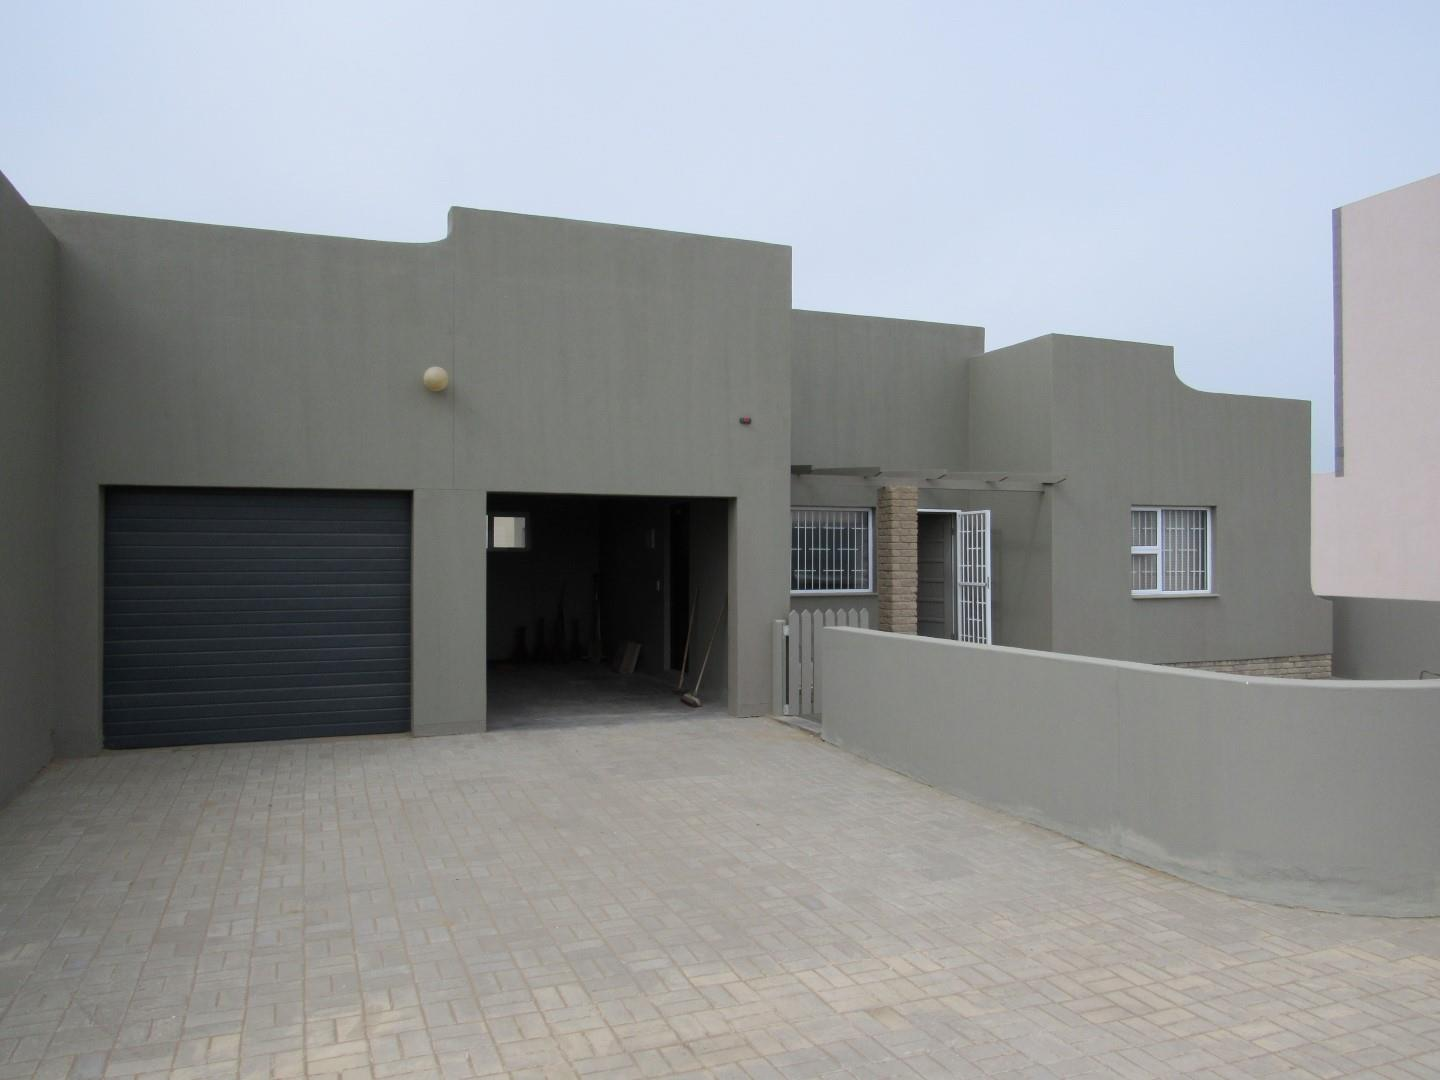 3 Bedroom House for Sale in Vogelstrand, Swakopmund - Erongo